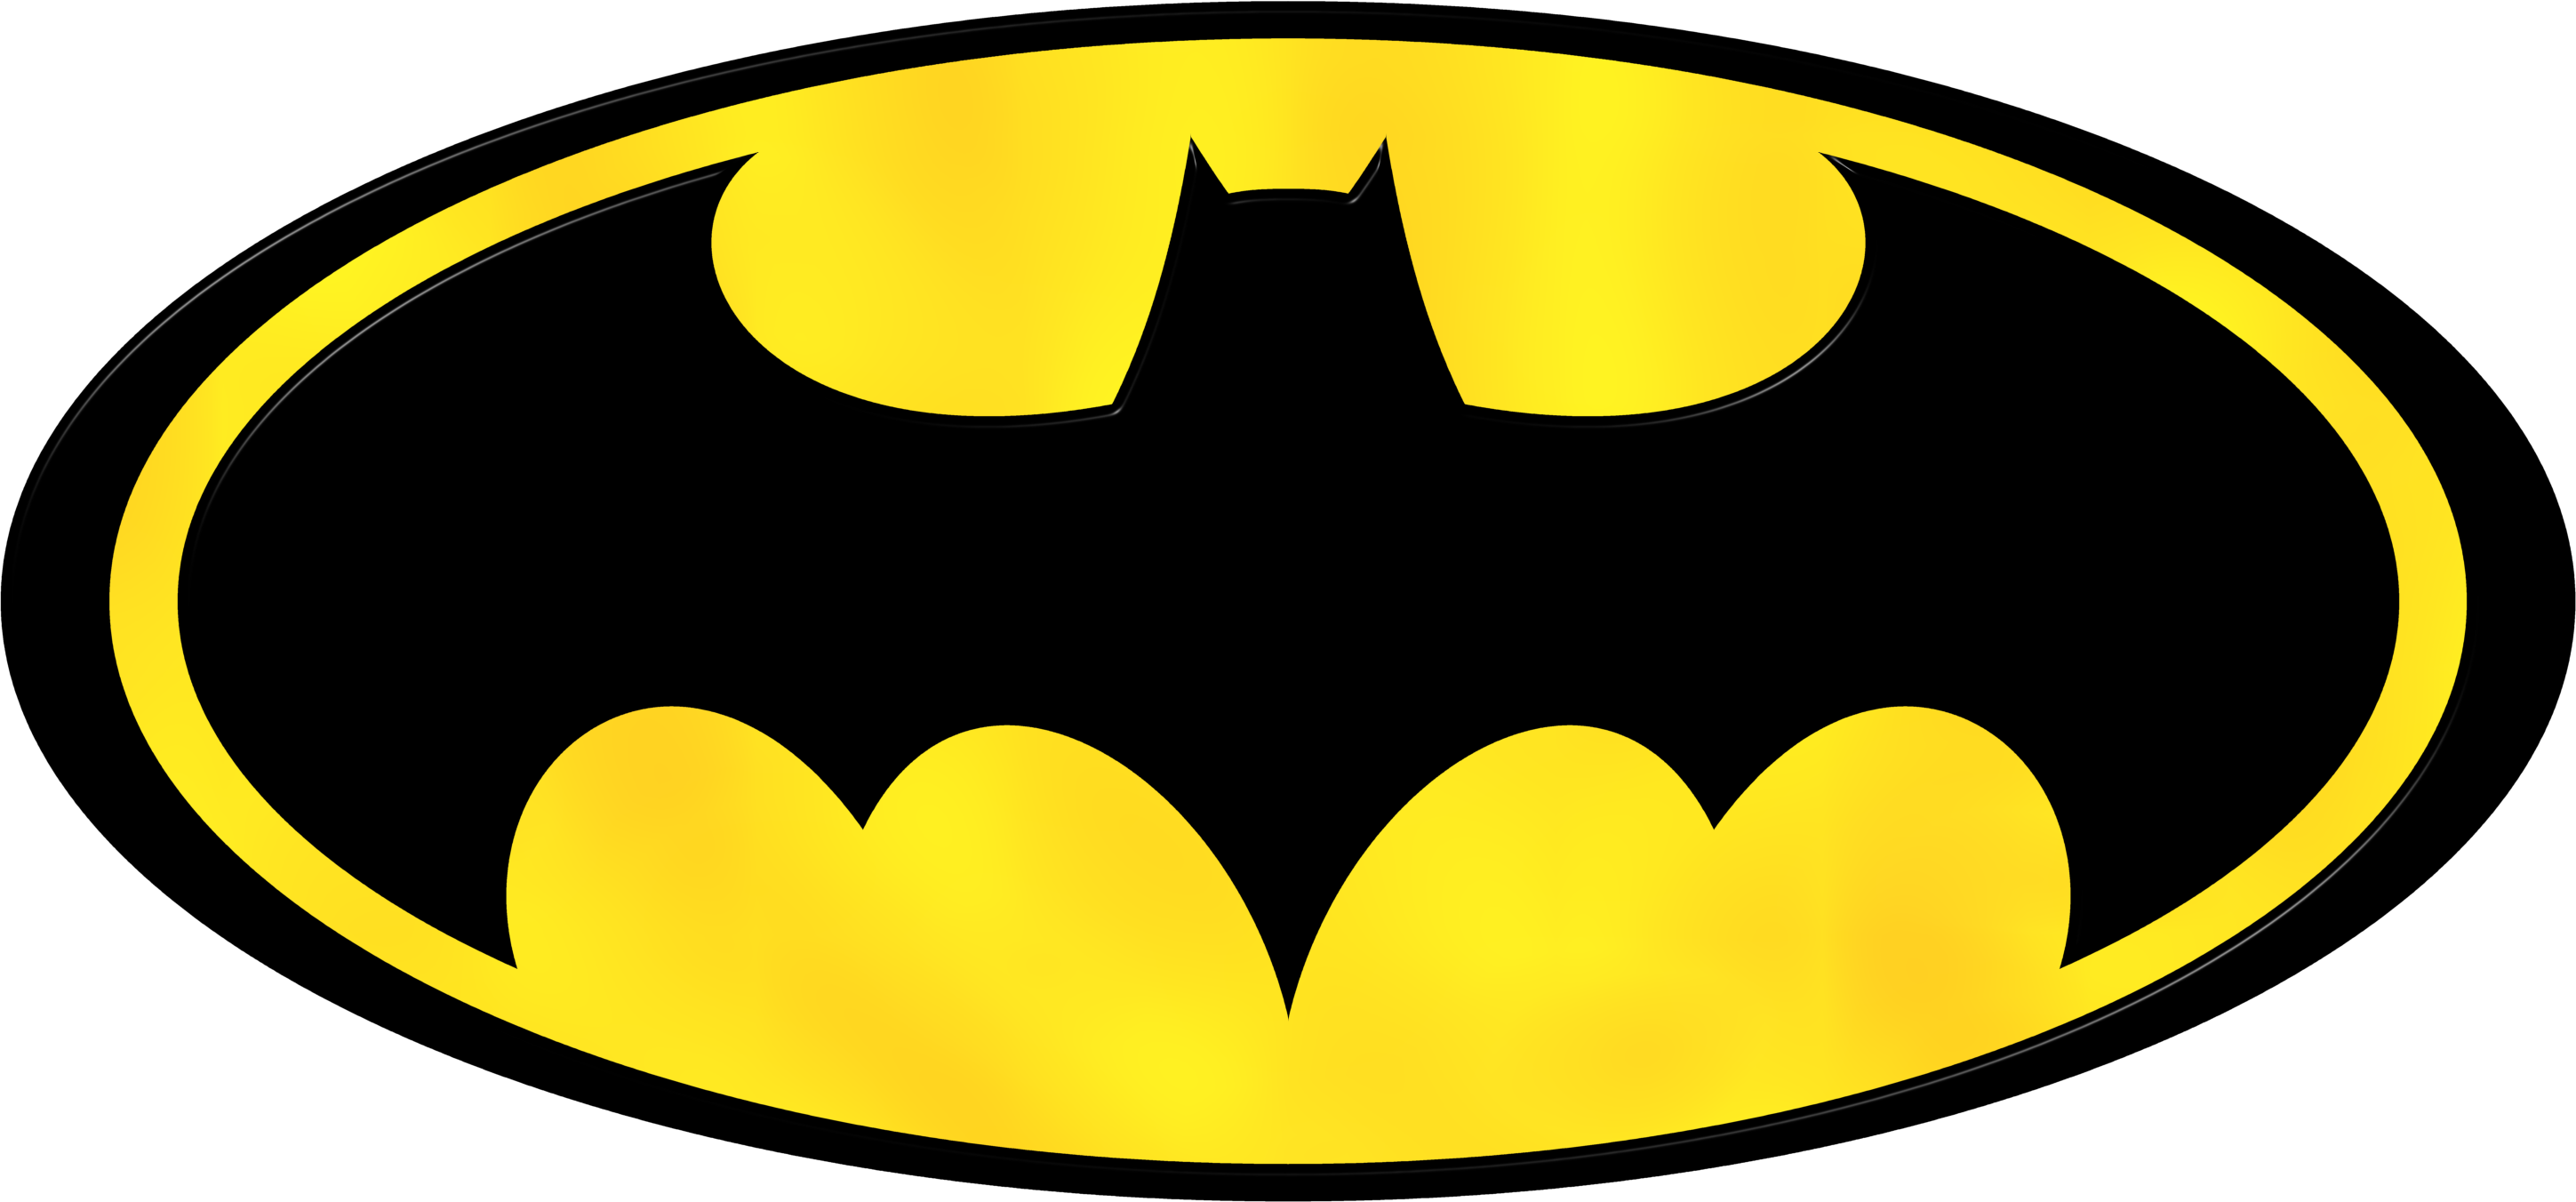 10 Batman Symbol Dark Knight Free Cliparts That You Can Download To